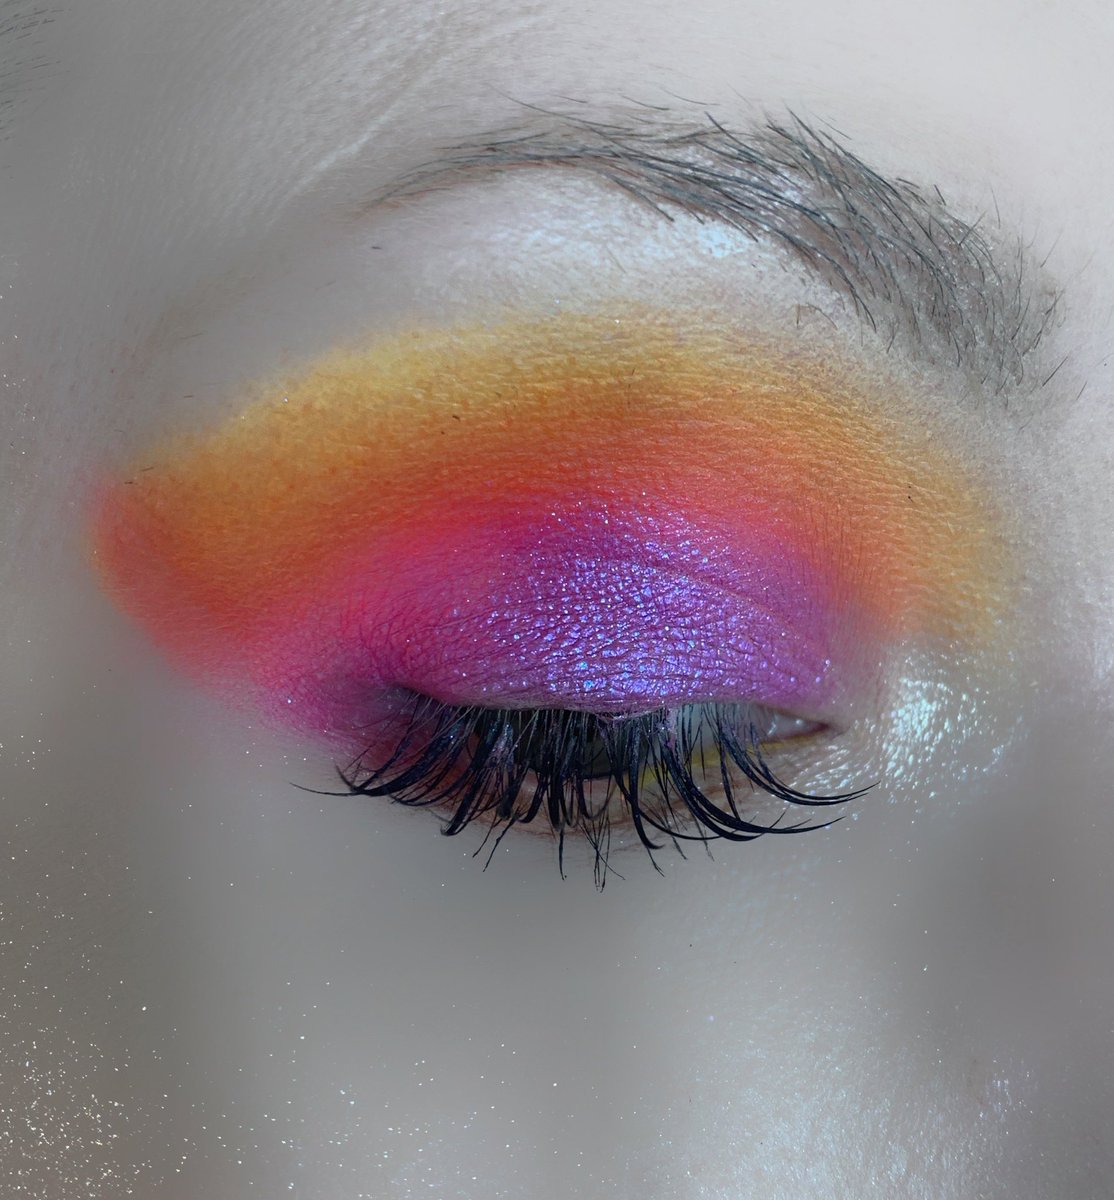 Was feeling some color this morning! #jamescharlespalette #jamescharles @jamescharles #JeffreeStarPRList! (My biggest goal) pic.twitter.com/RtvkgFt4qq